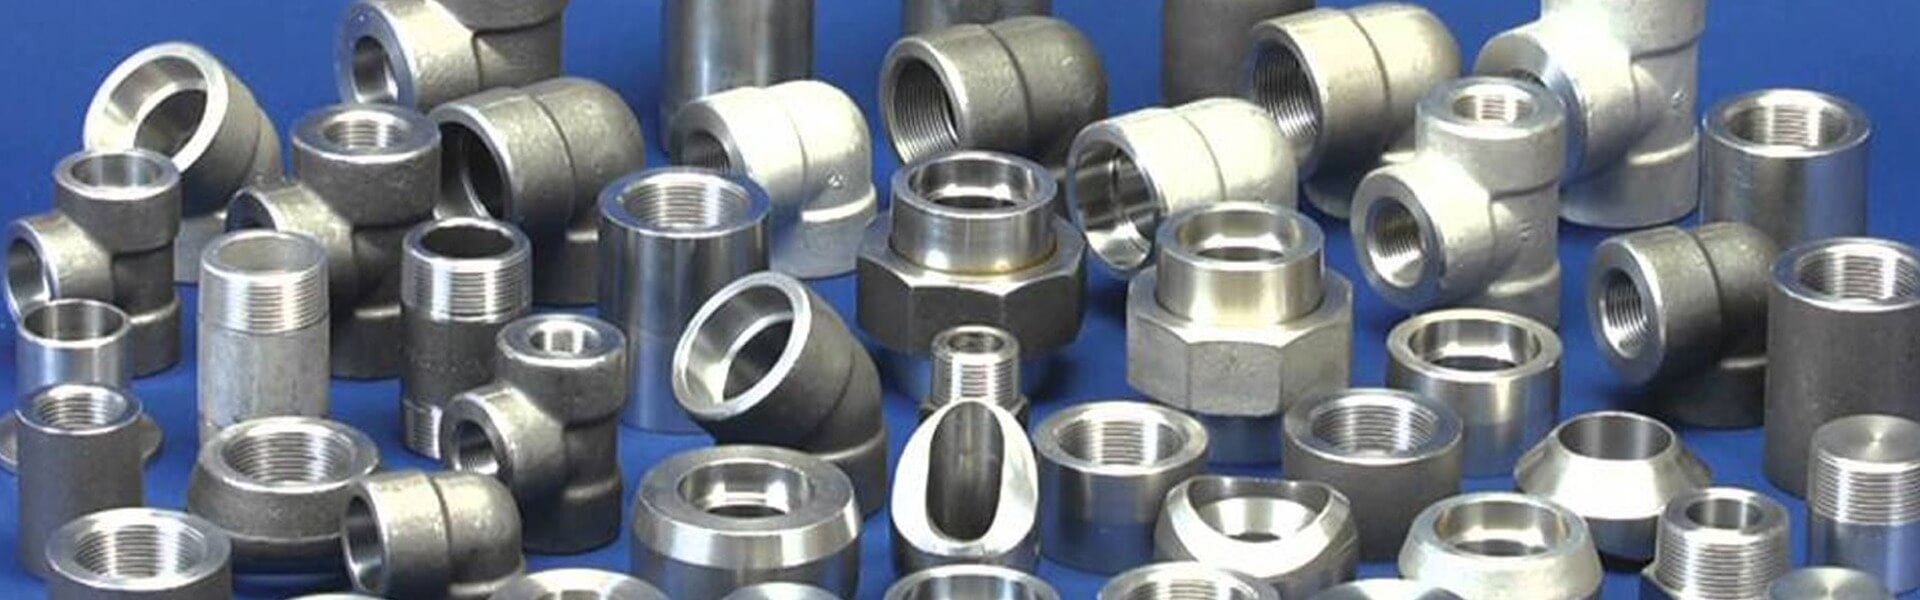 Forged Fittings Manufacturer & Exporter